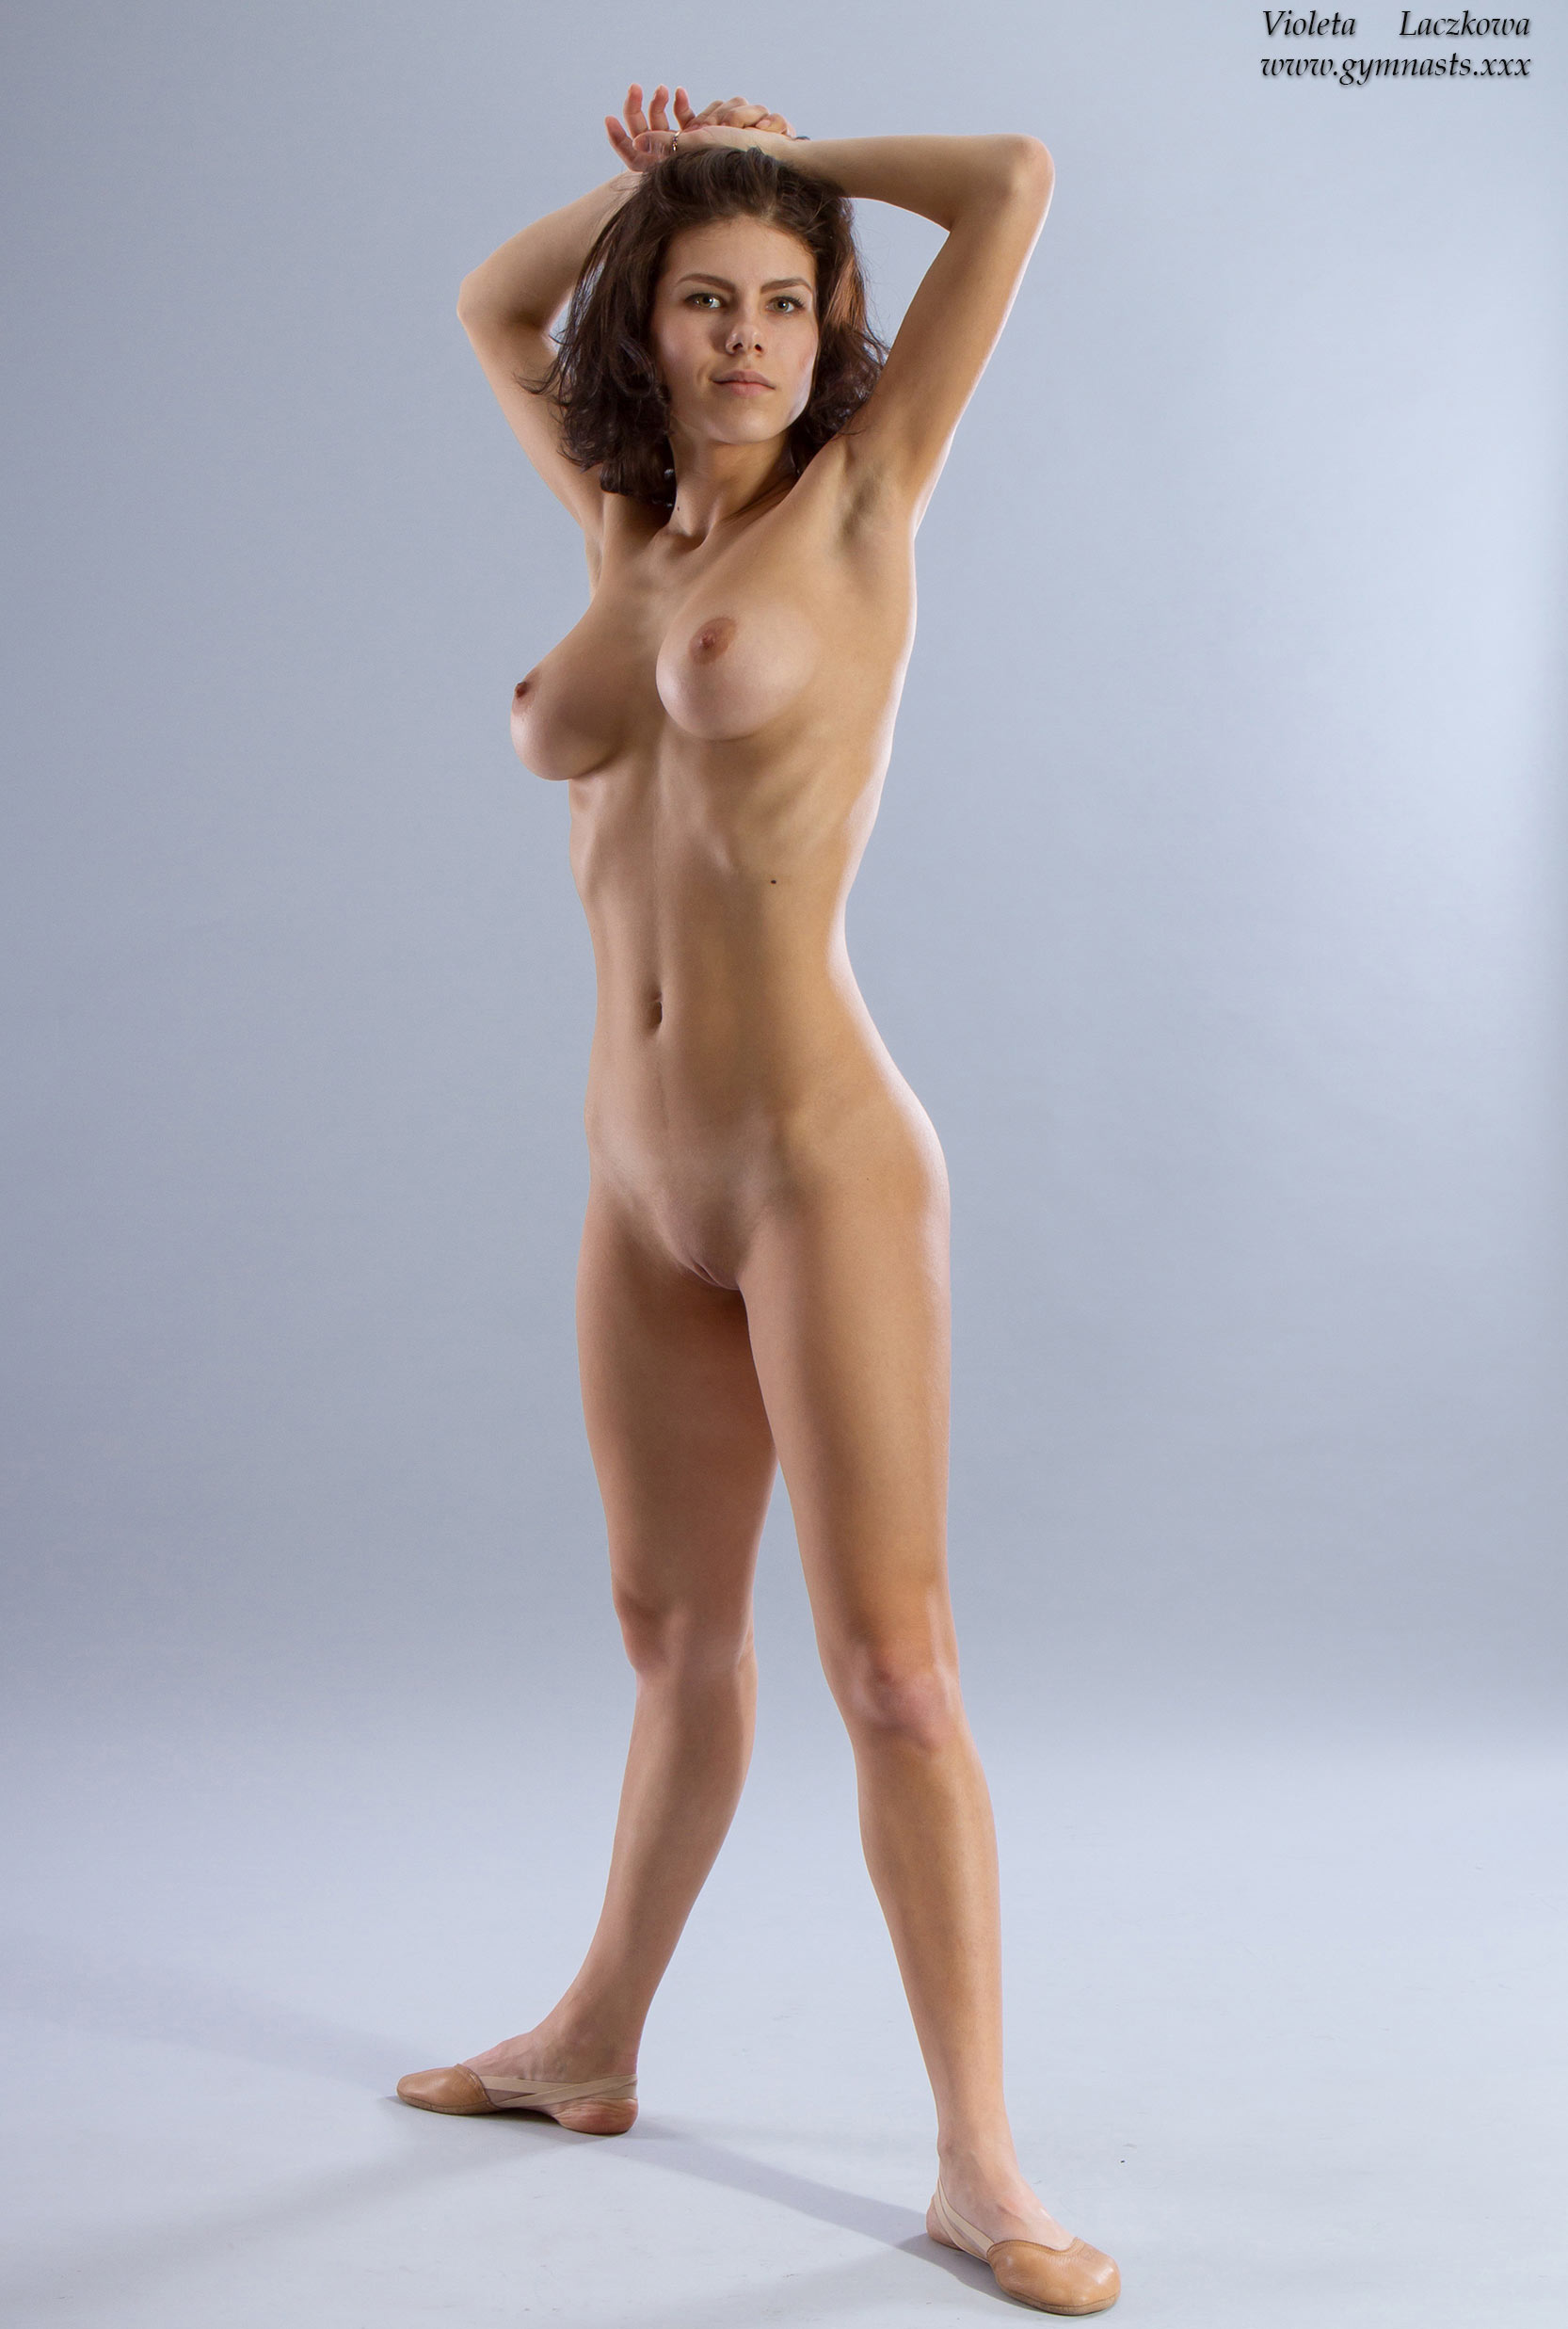 Naked Contortionists And Nude Gymnastics Blog-8136